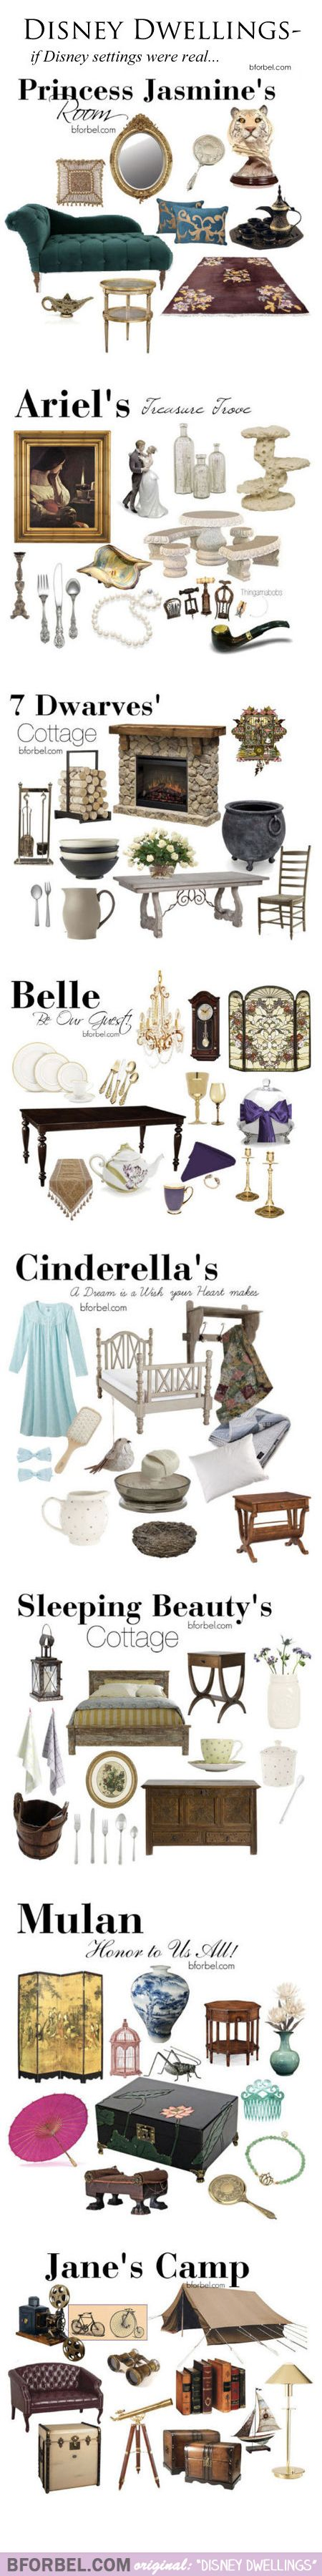 Disney Dwellings: decorating like Disney, by BforBel.com #RealityToDreams #Disney: